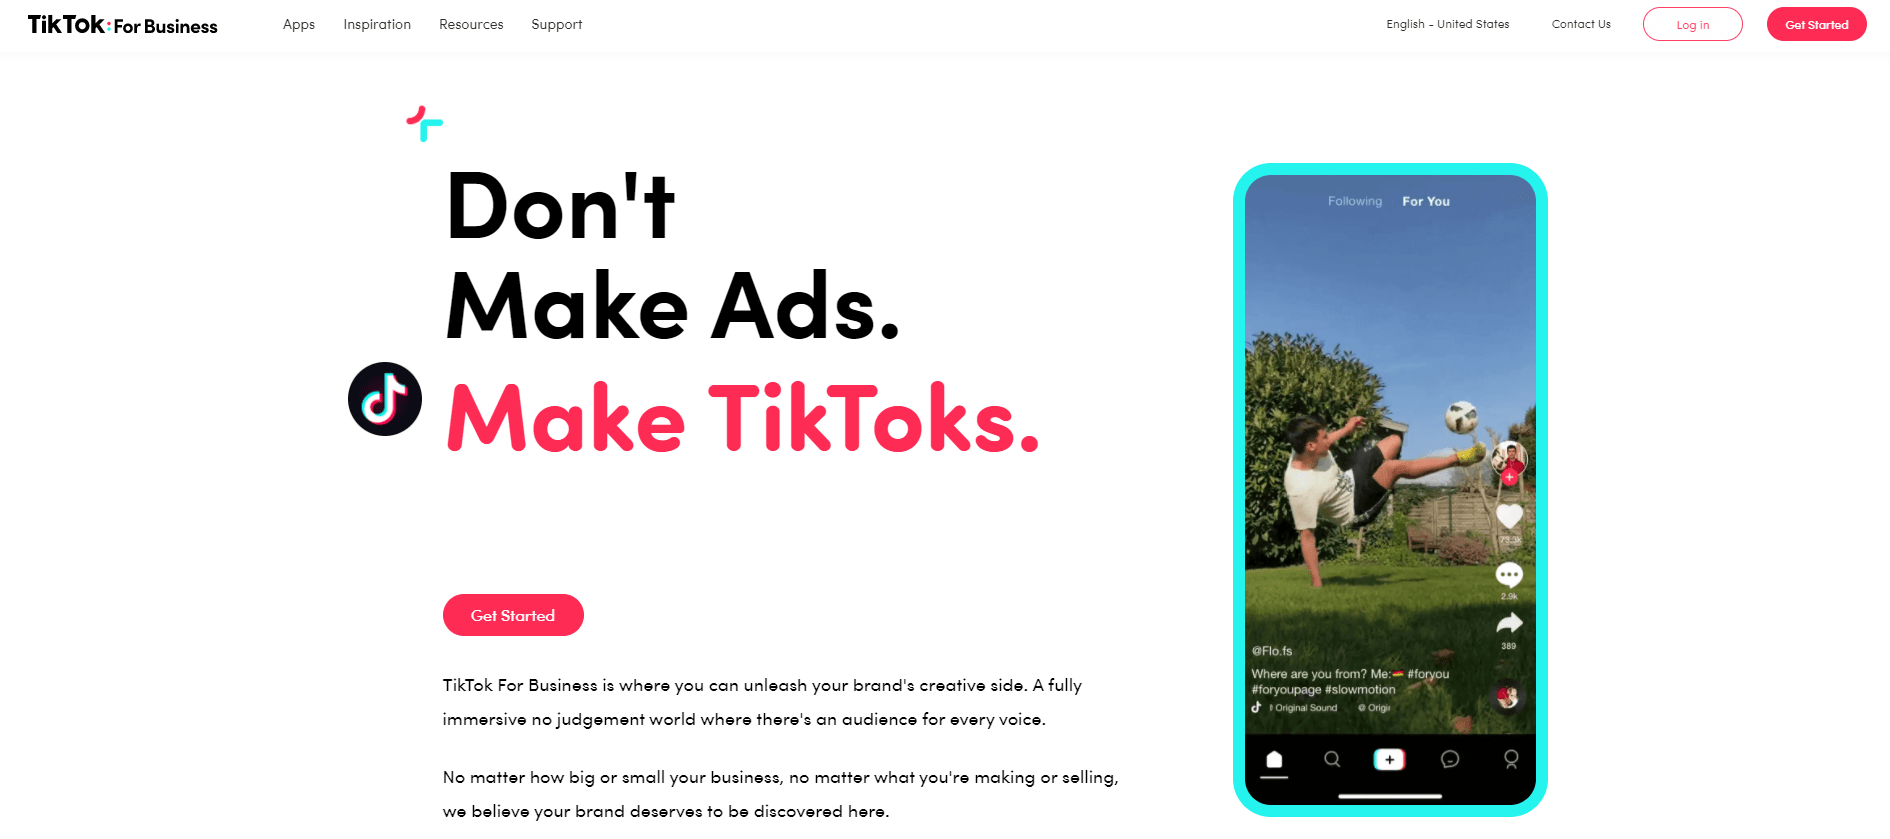 TikTok main message